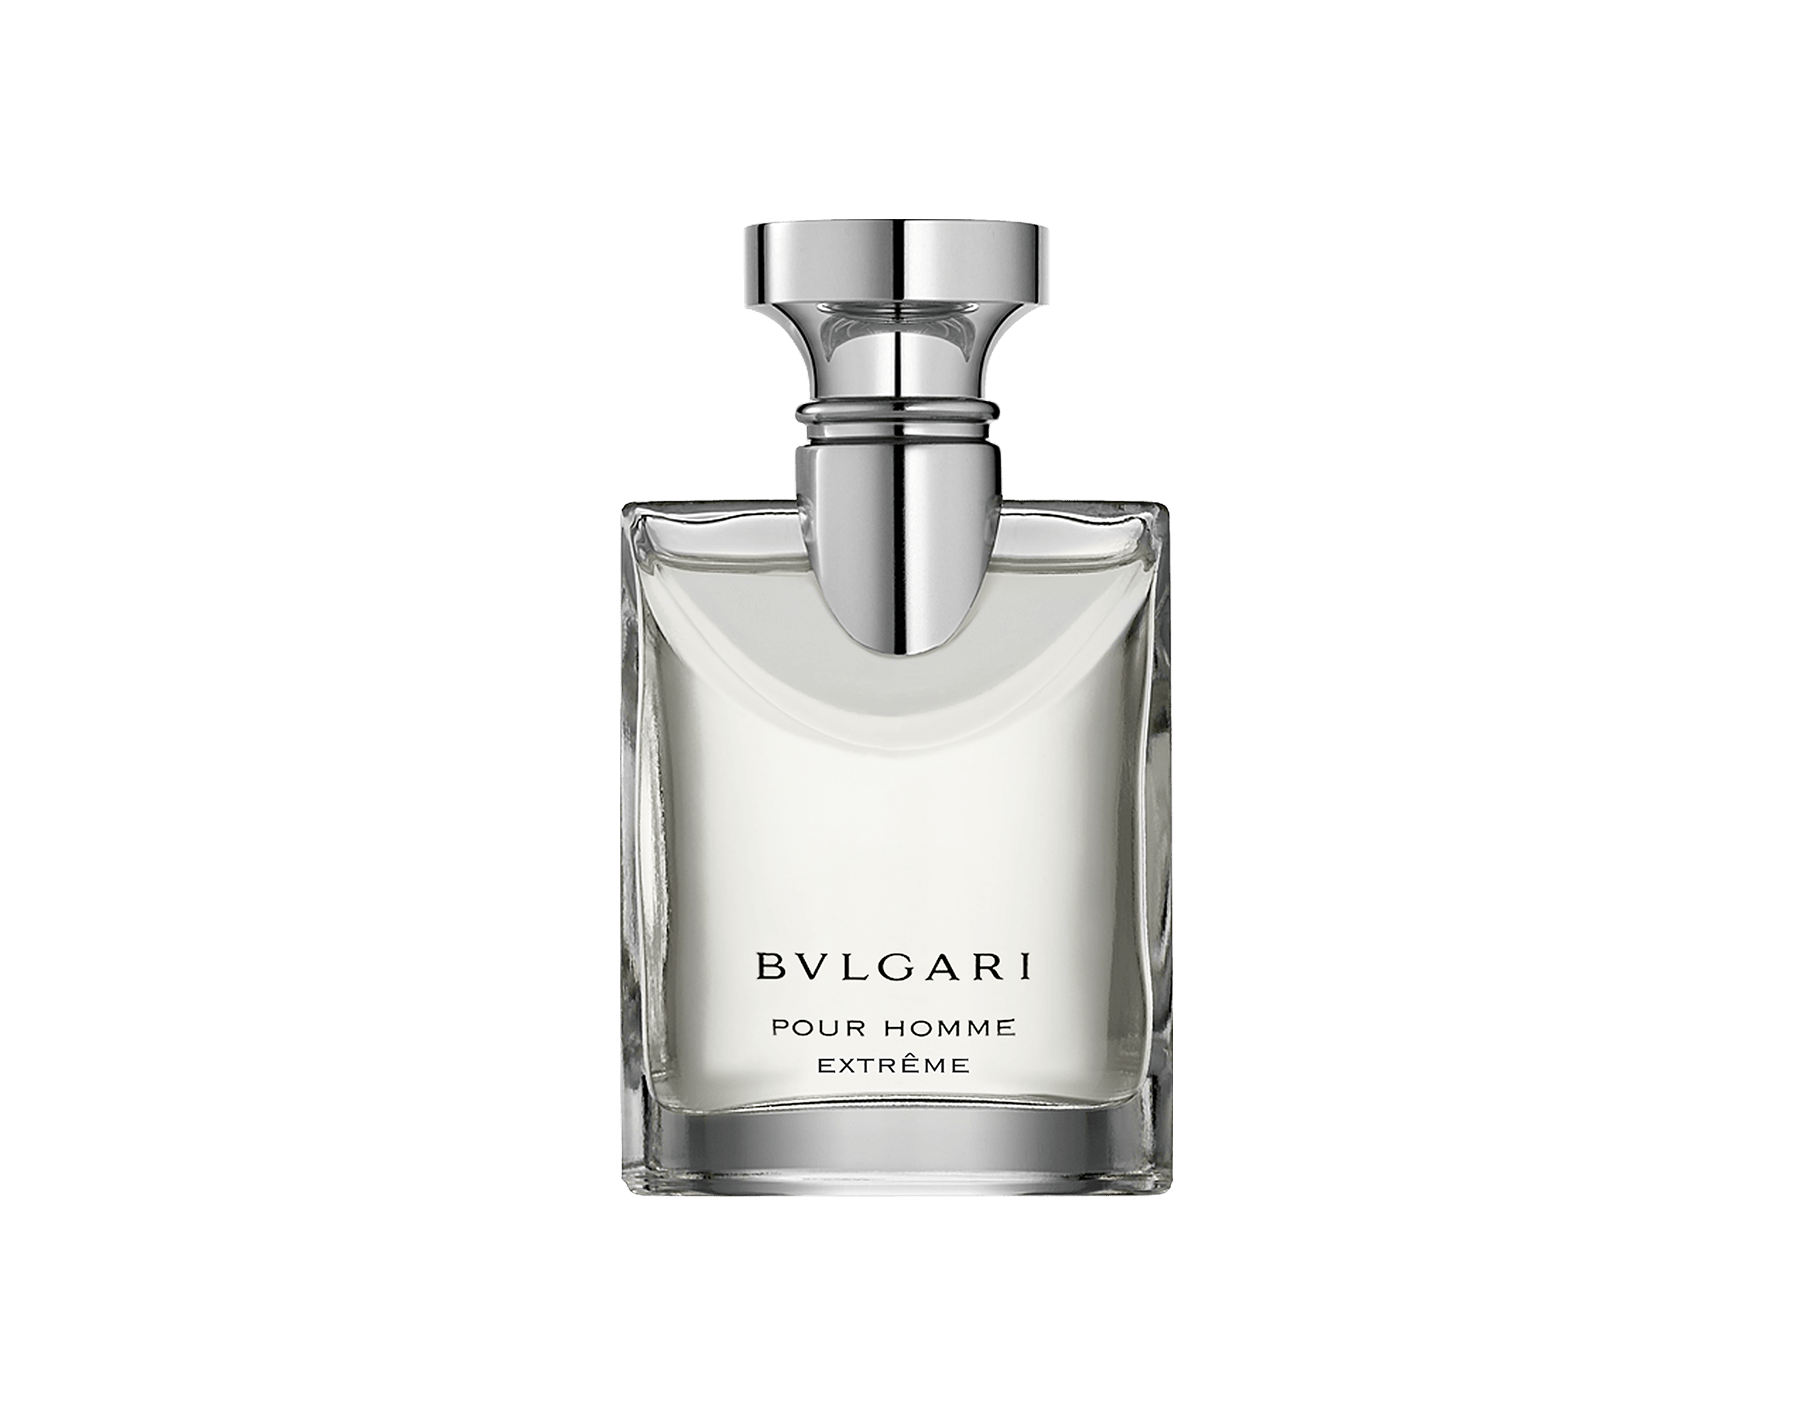 A contemporary and classic fragrance for men 83320 image 1